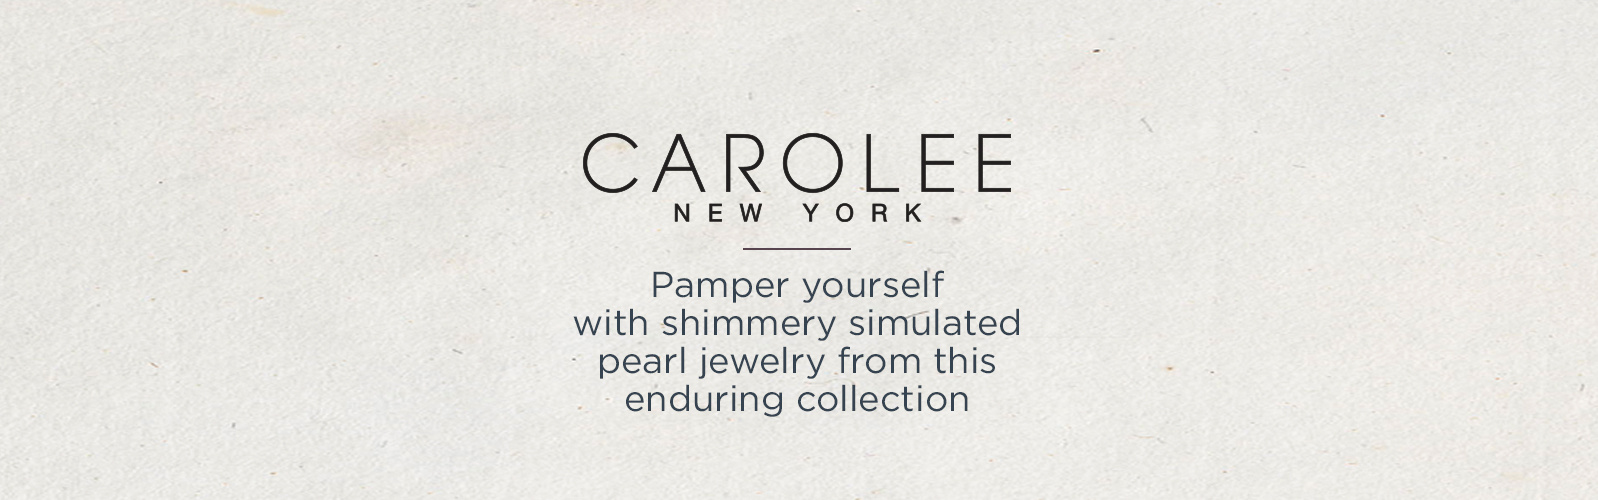 Carolee Pamper yourself with shimmery simulated pearl jewelry from this enduring collection